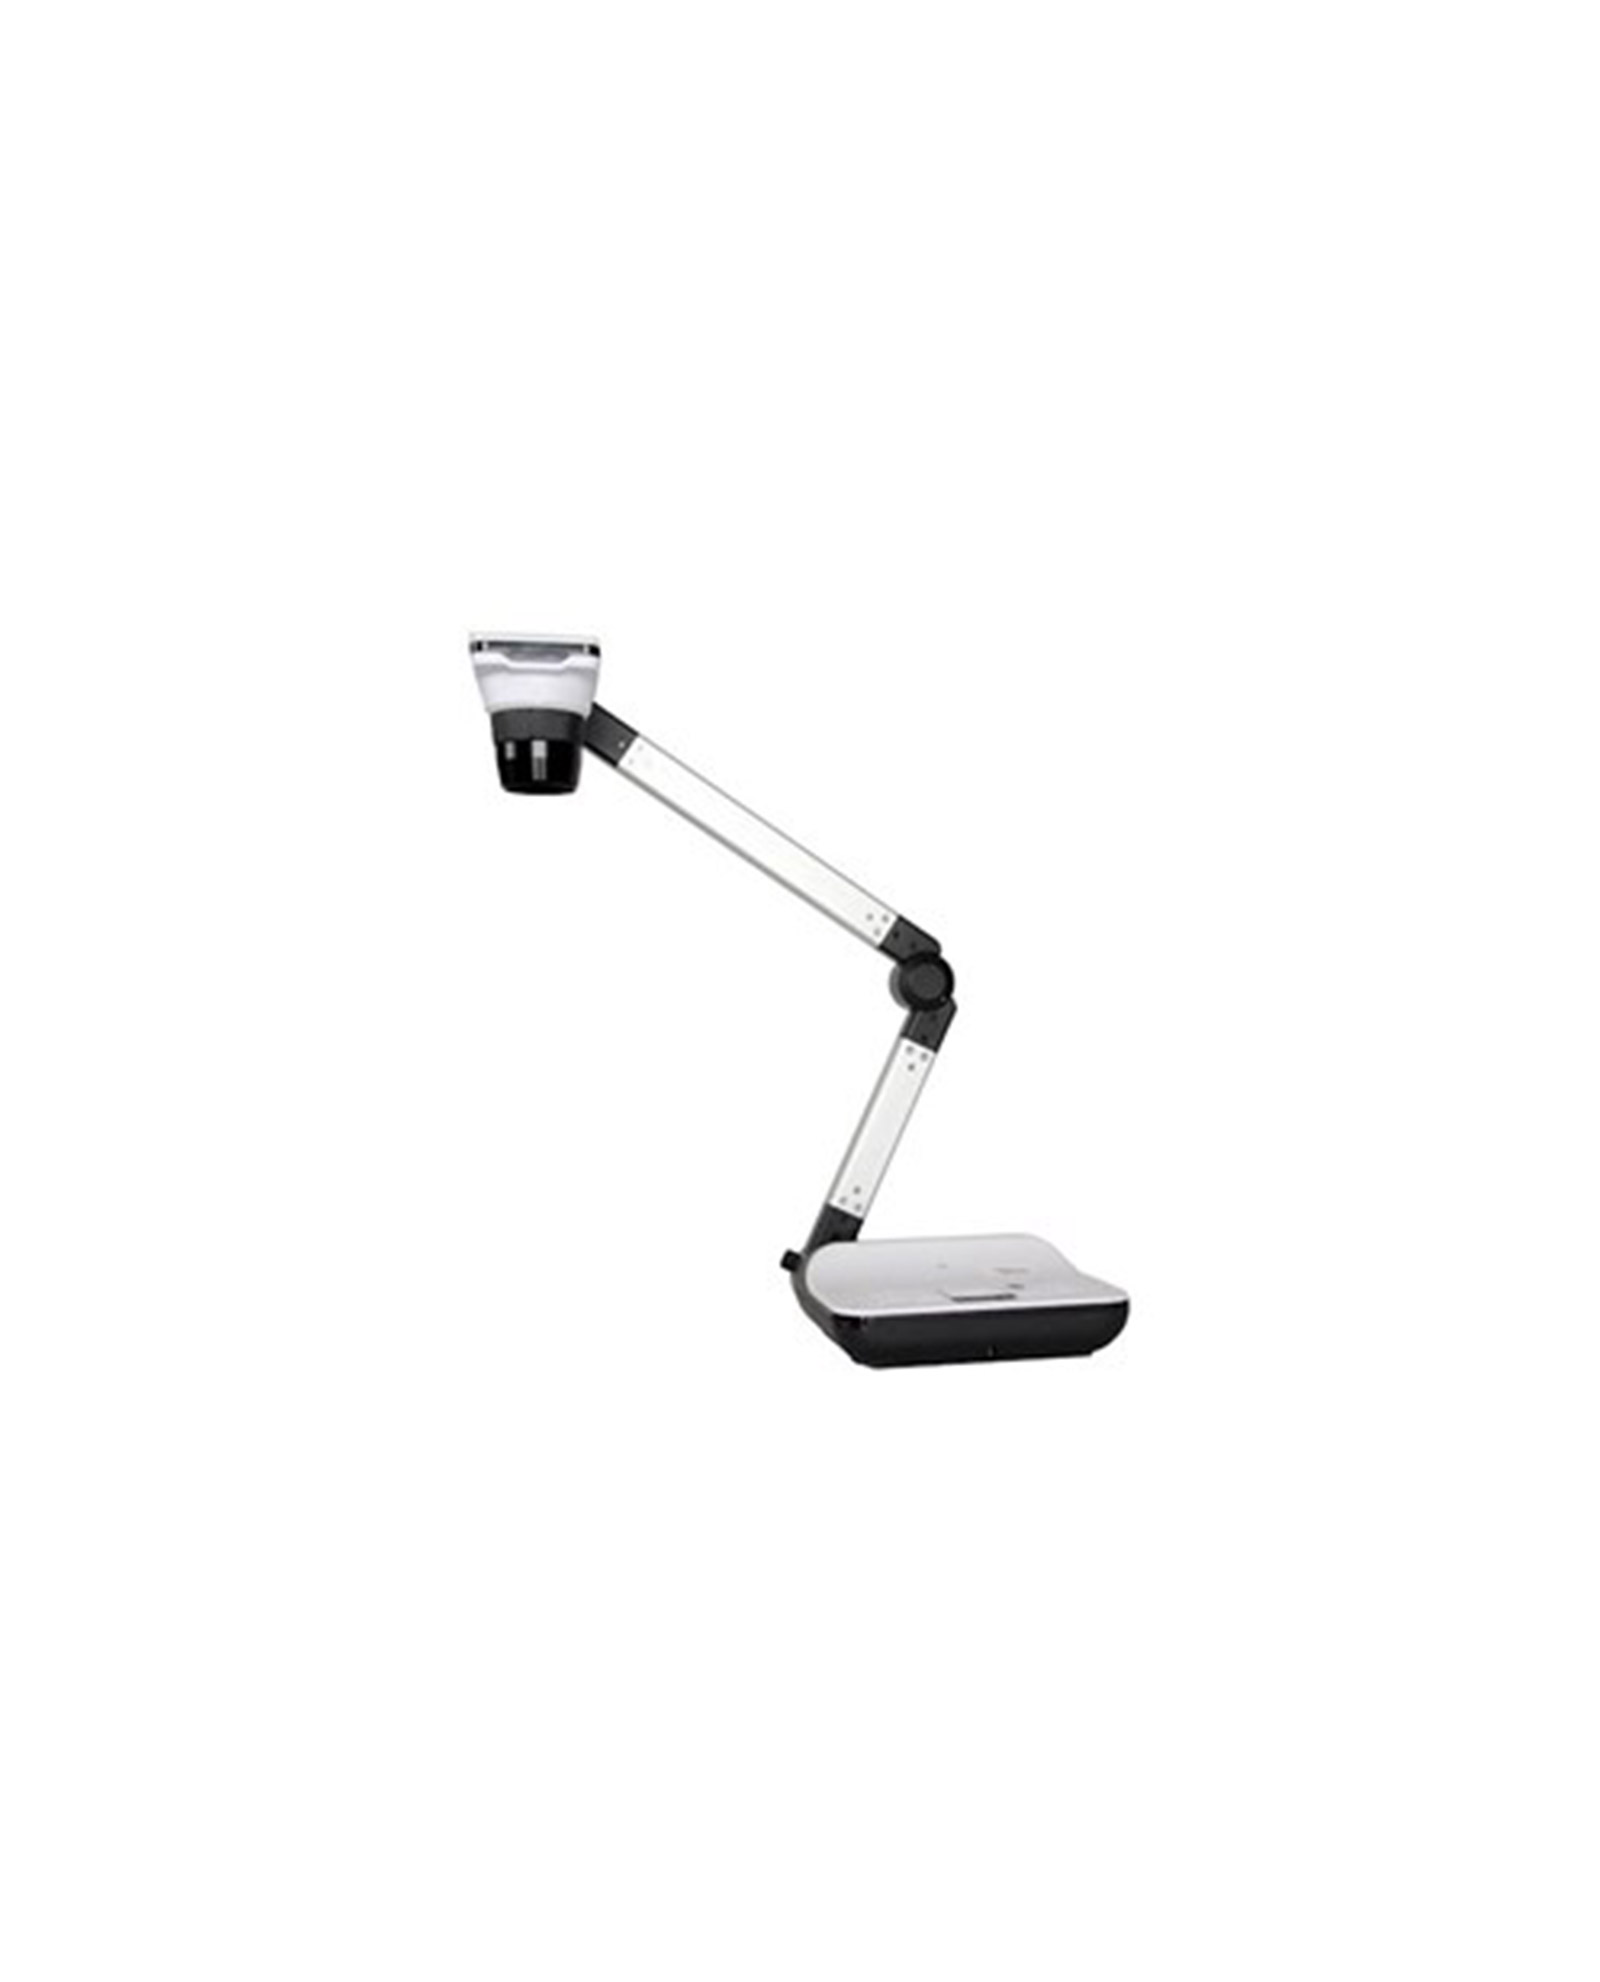 Optoma Dc554 Document Camera 13mp 4k With Stand